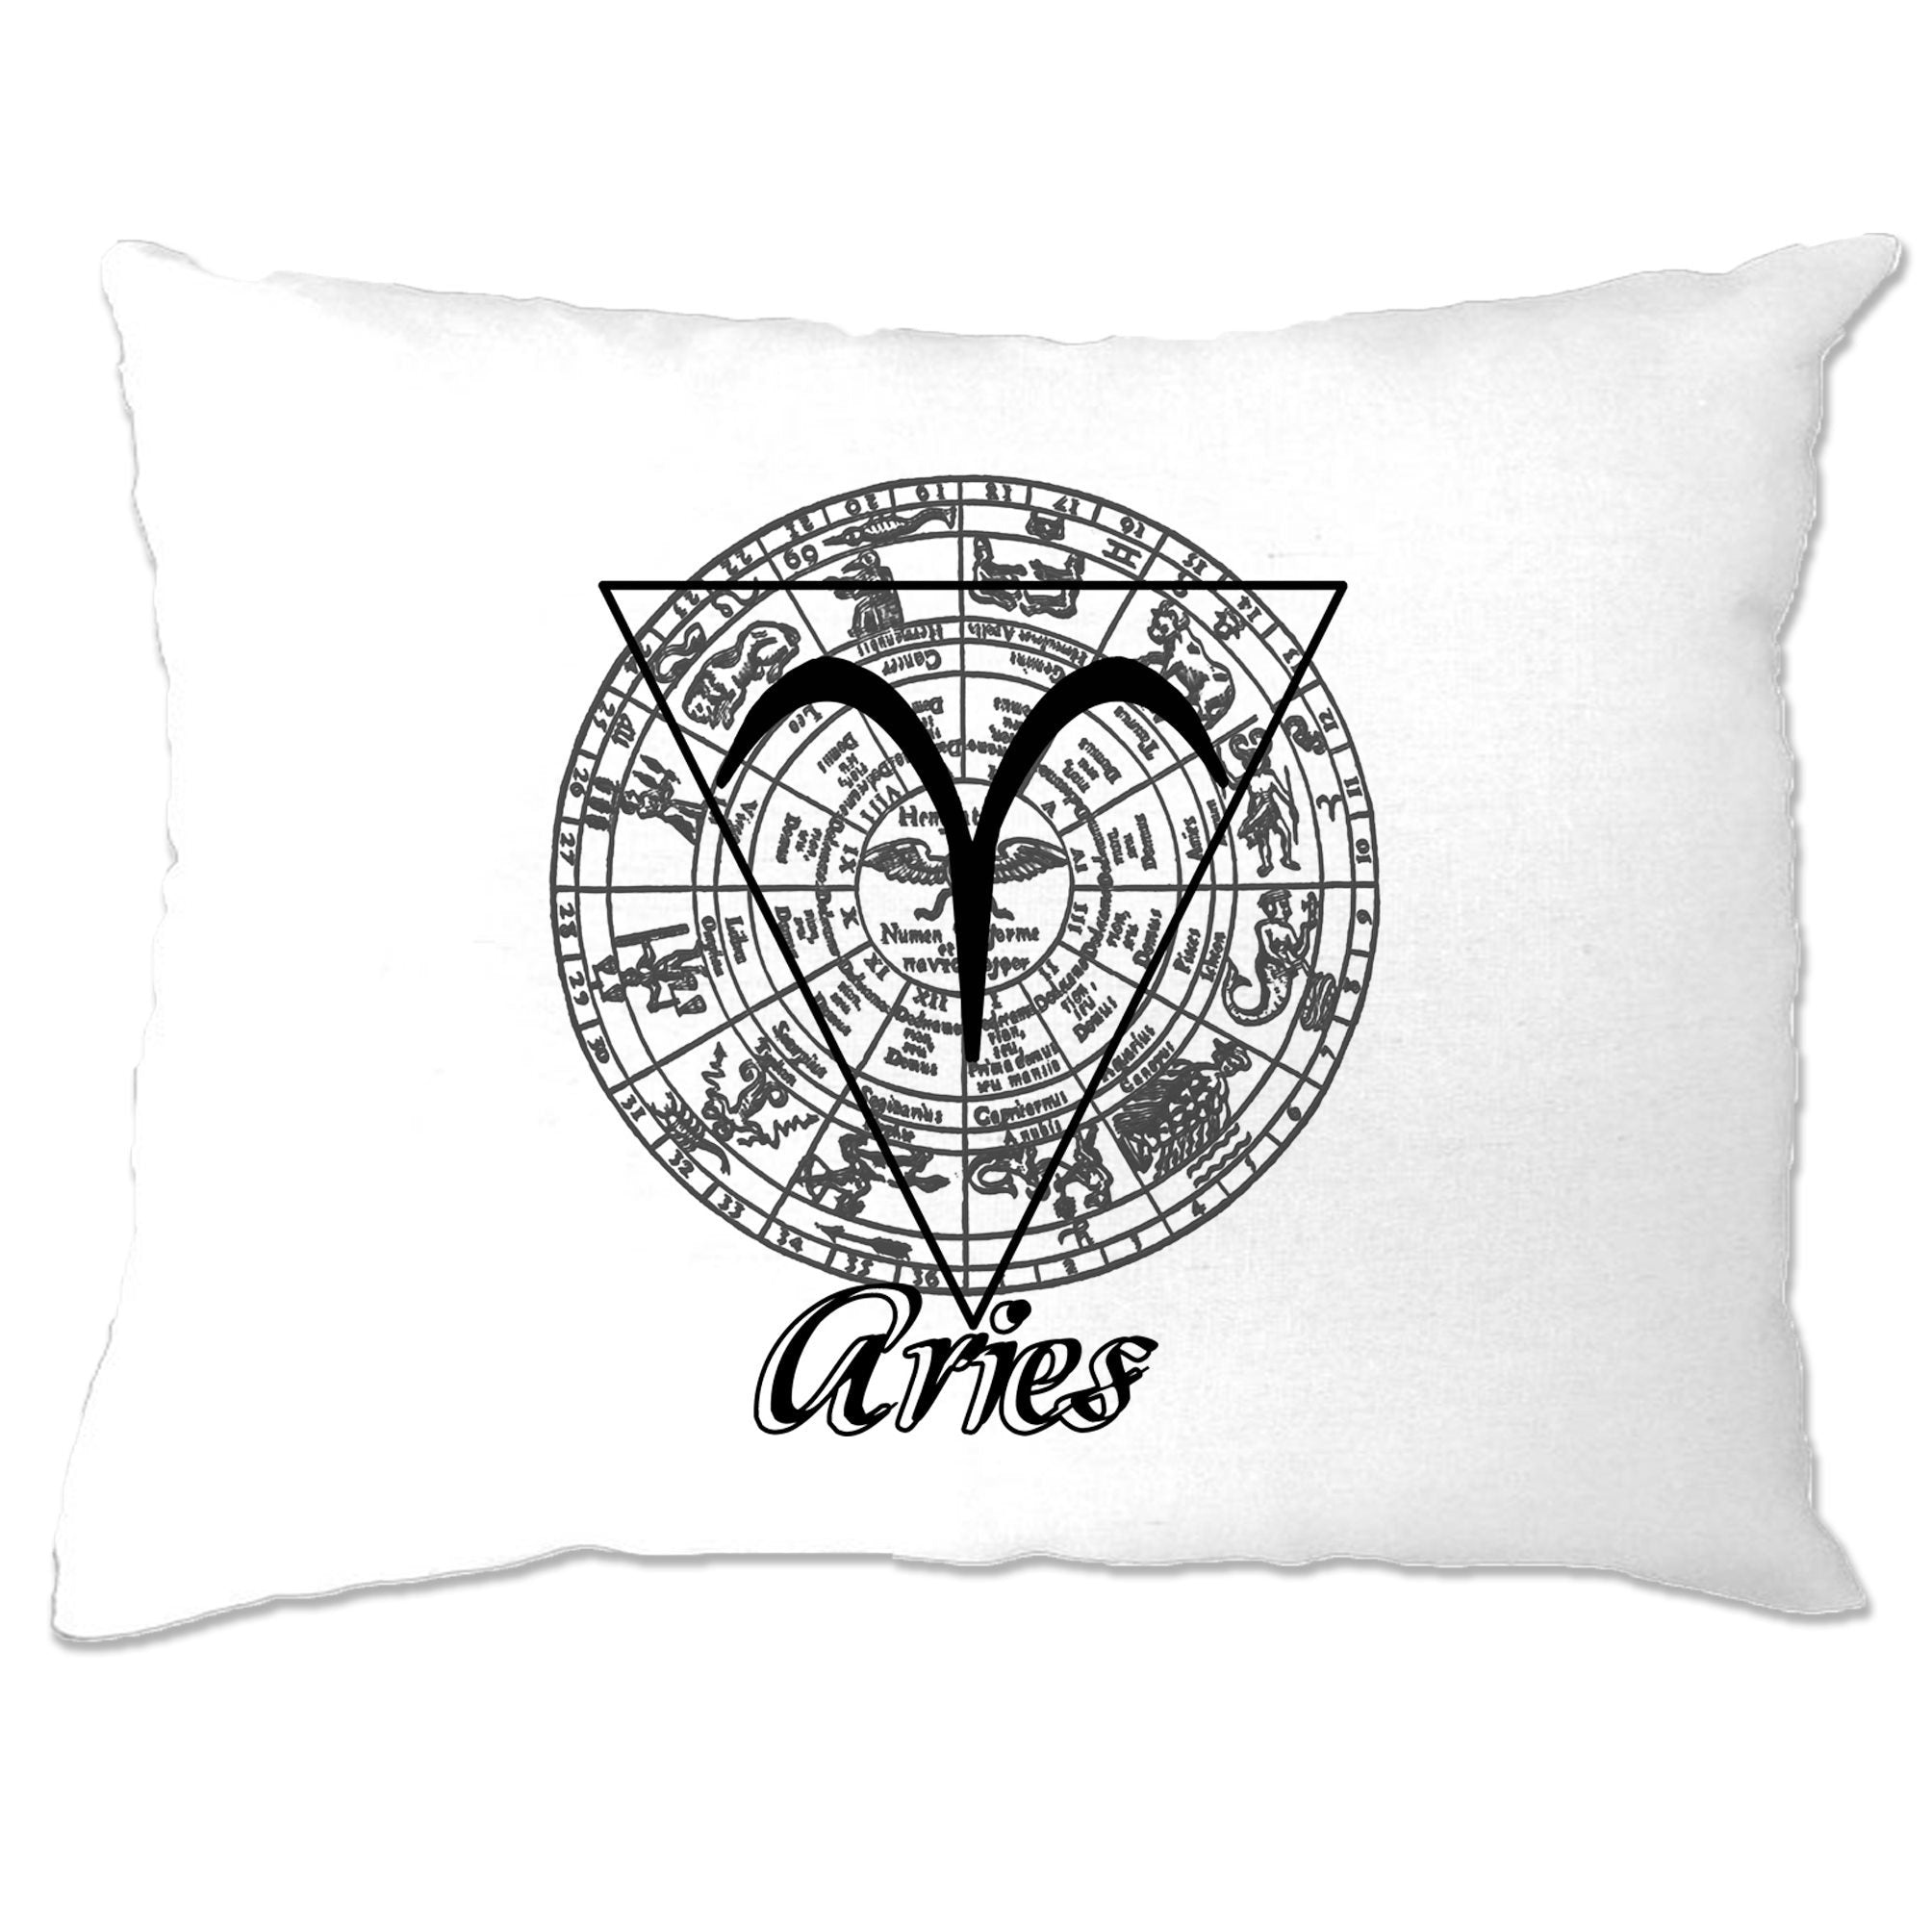 Horoscope Pillow Case Aries Zodiac Star Sign Birthday